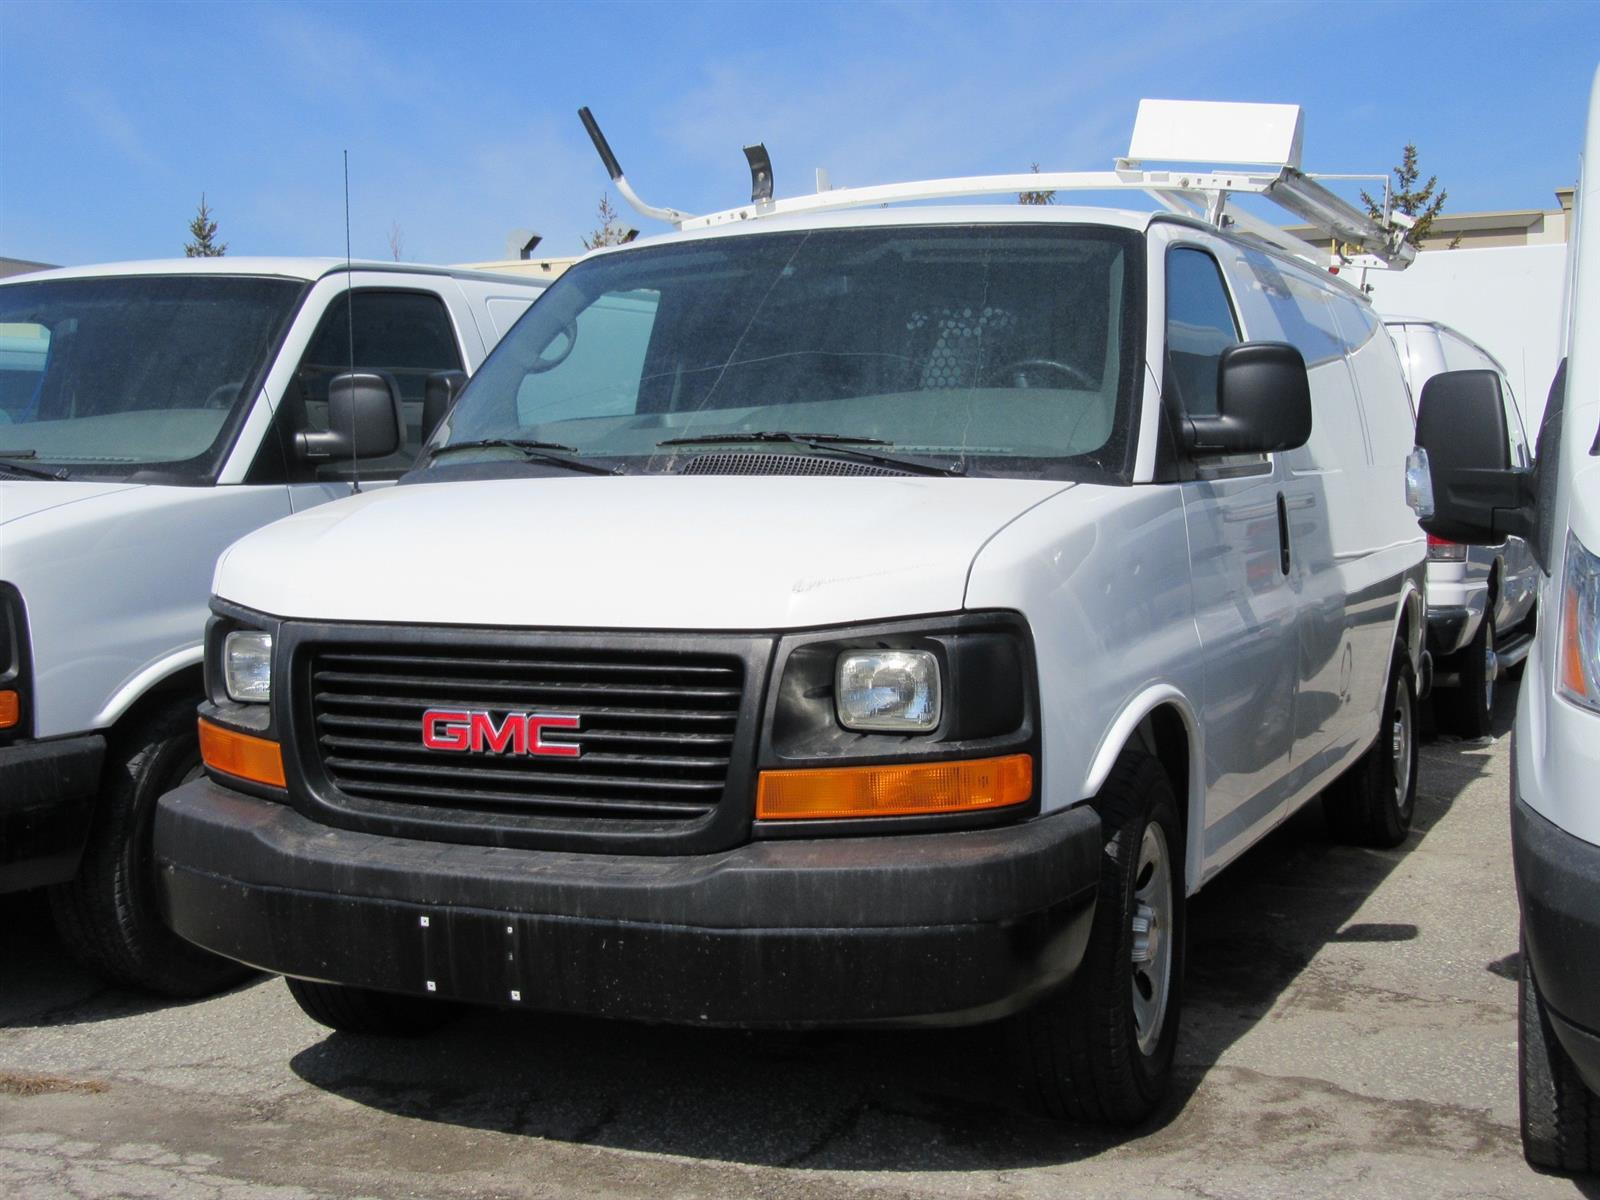 Gmc savana photo - 5